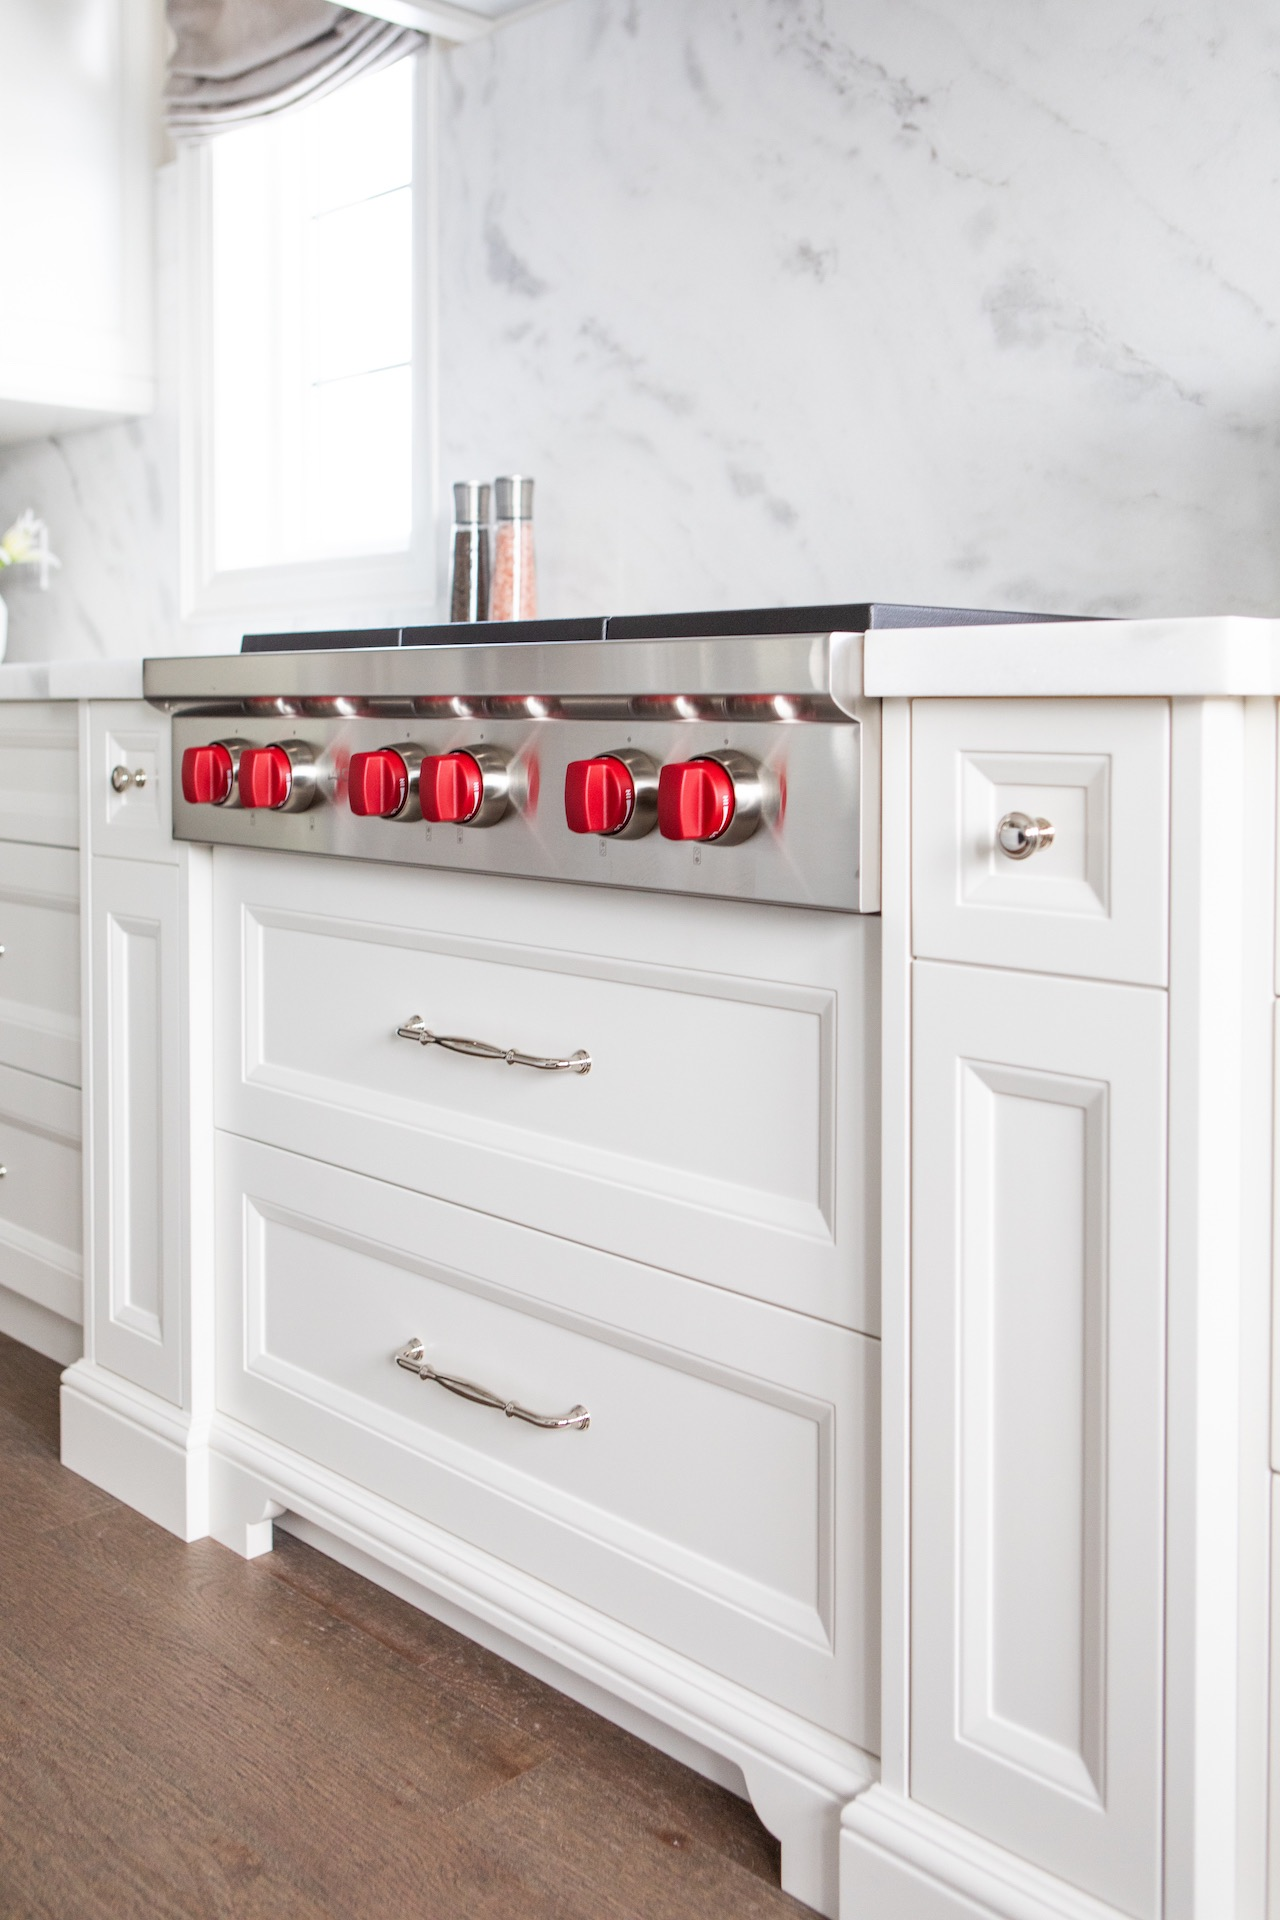 stove top with red handles